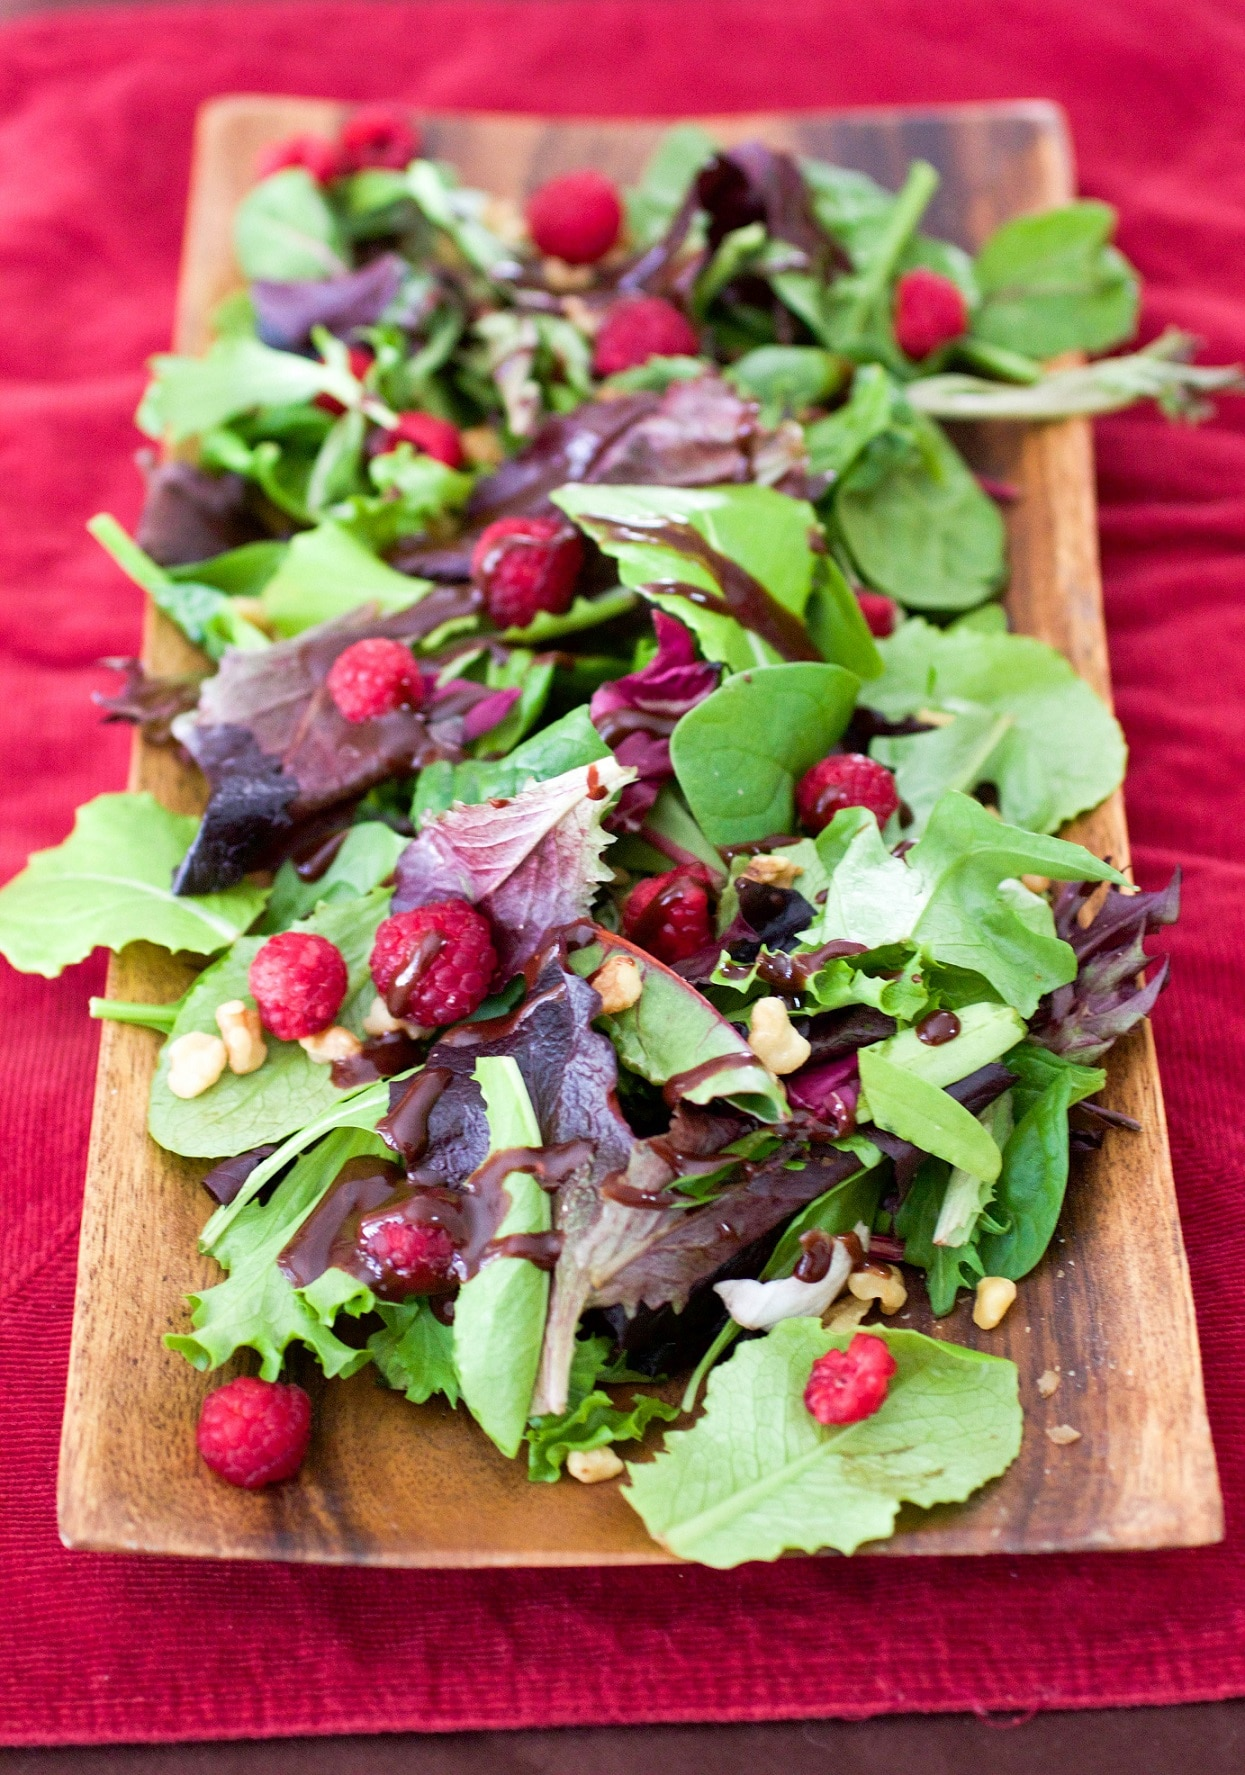 Salad with Chocolate Balsamic Vinaigrette